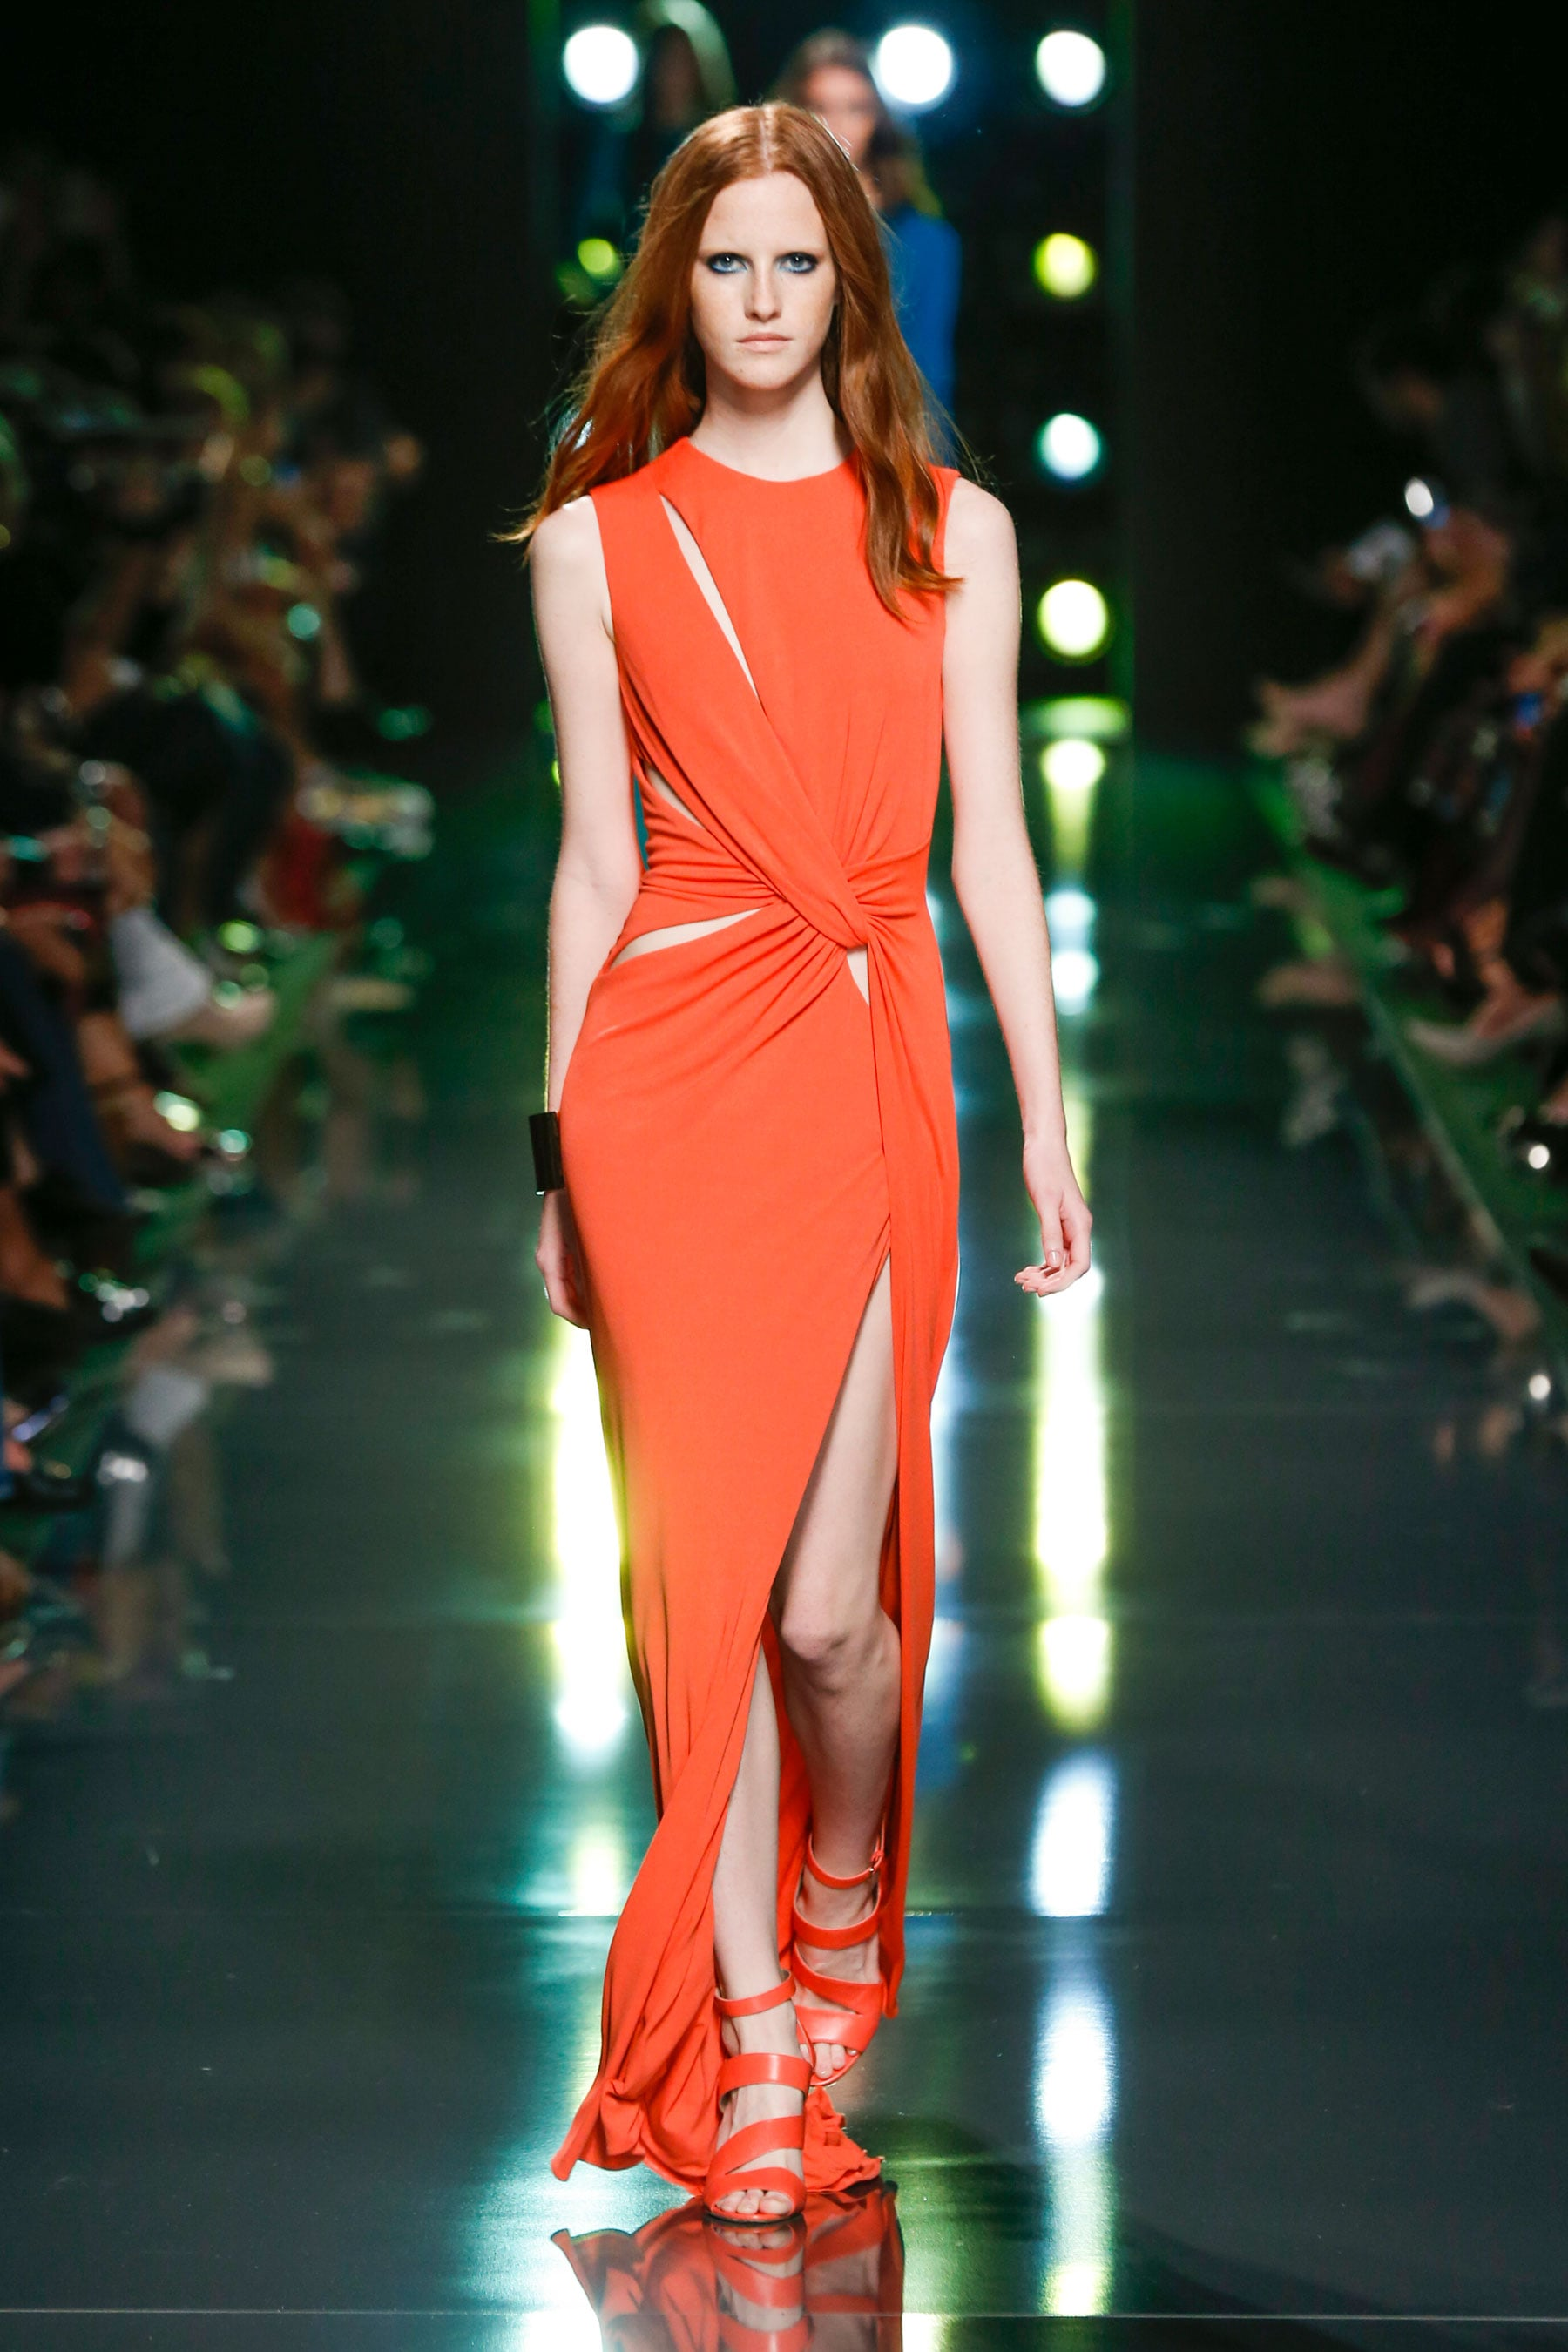 Elie Saab Spring 2015 | Behold, the Most Gorgeous Gowns of Fashion Week |  POPSUGAR Fashion Photo 18